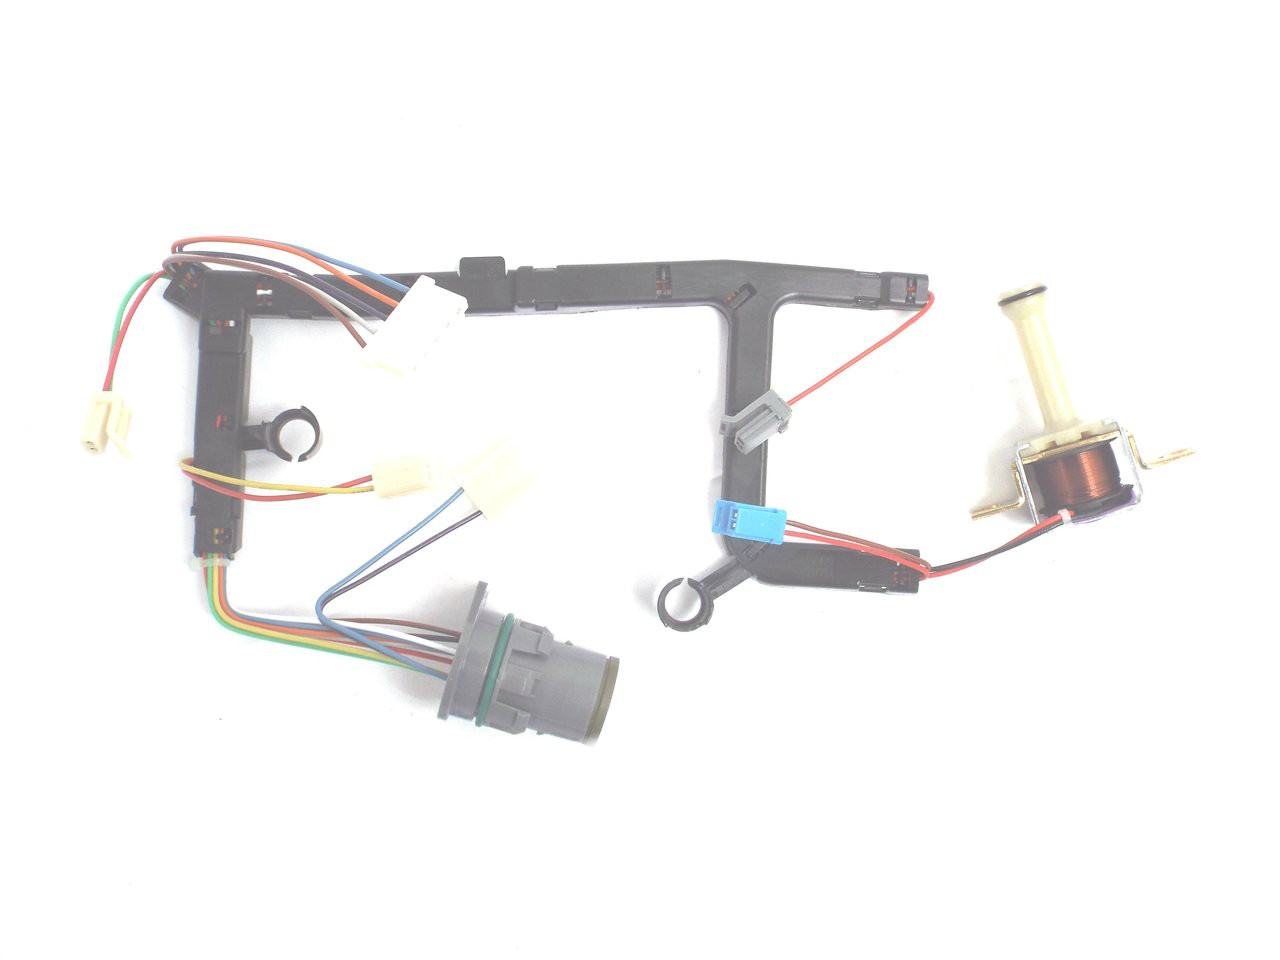 4l60e Tcc Lockup Solenoid Wire Harness 1997 2002 New Fast Shipping Tool Gm Transmission Wiring From Global Parts 2003